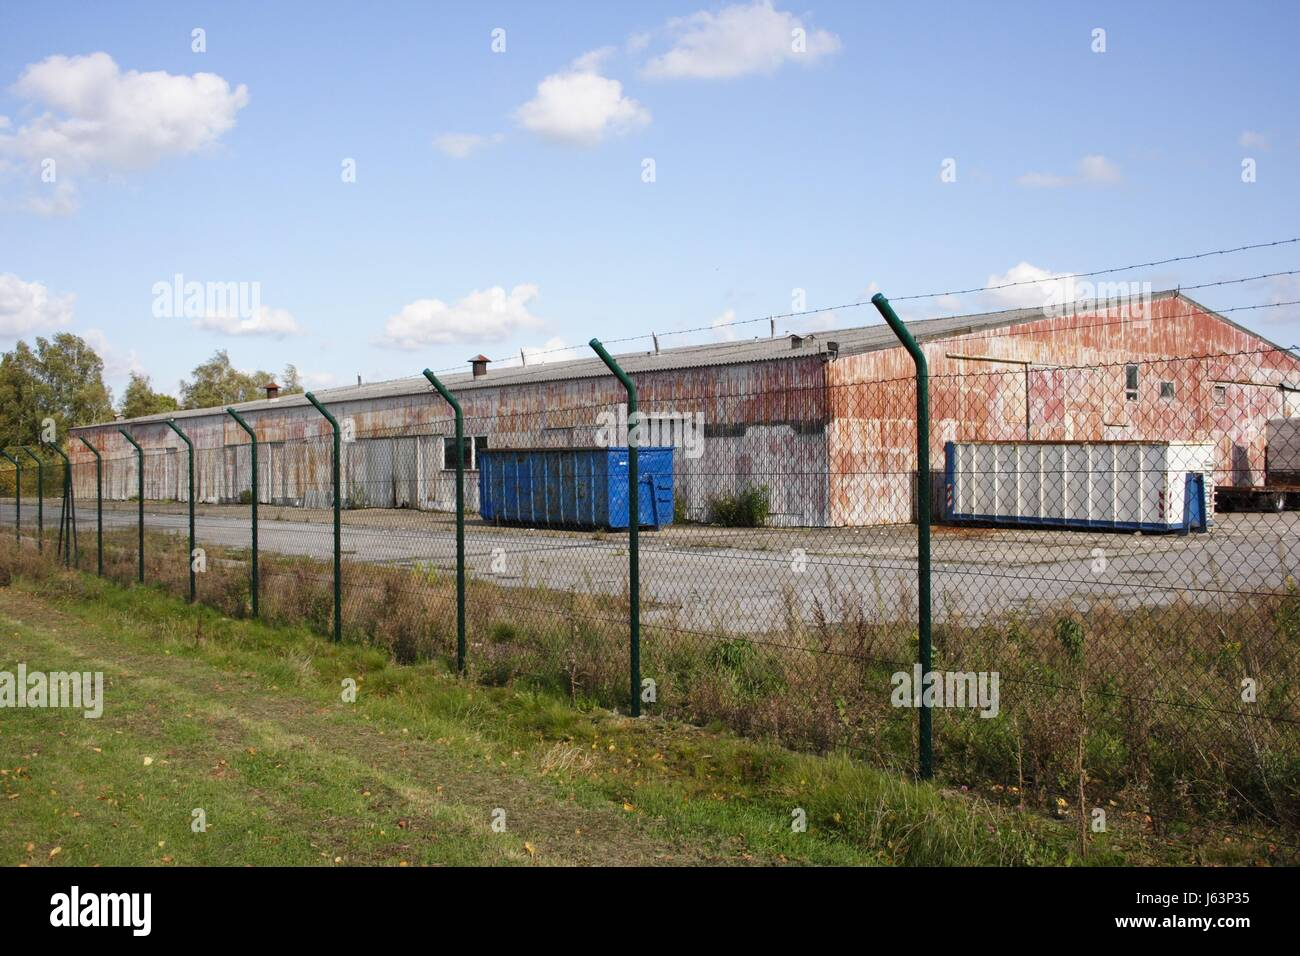 Wellblechhalle Stockfotos & Wellblechhalle Bilder Alamy